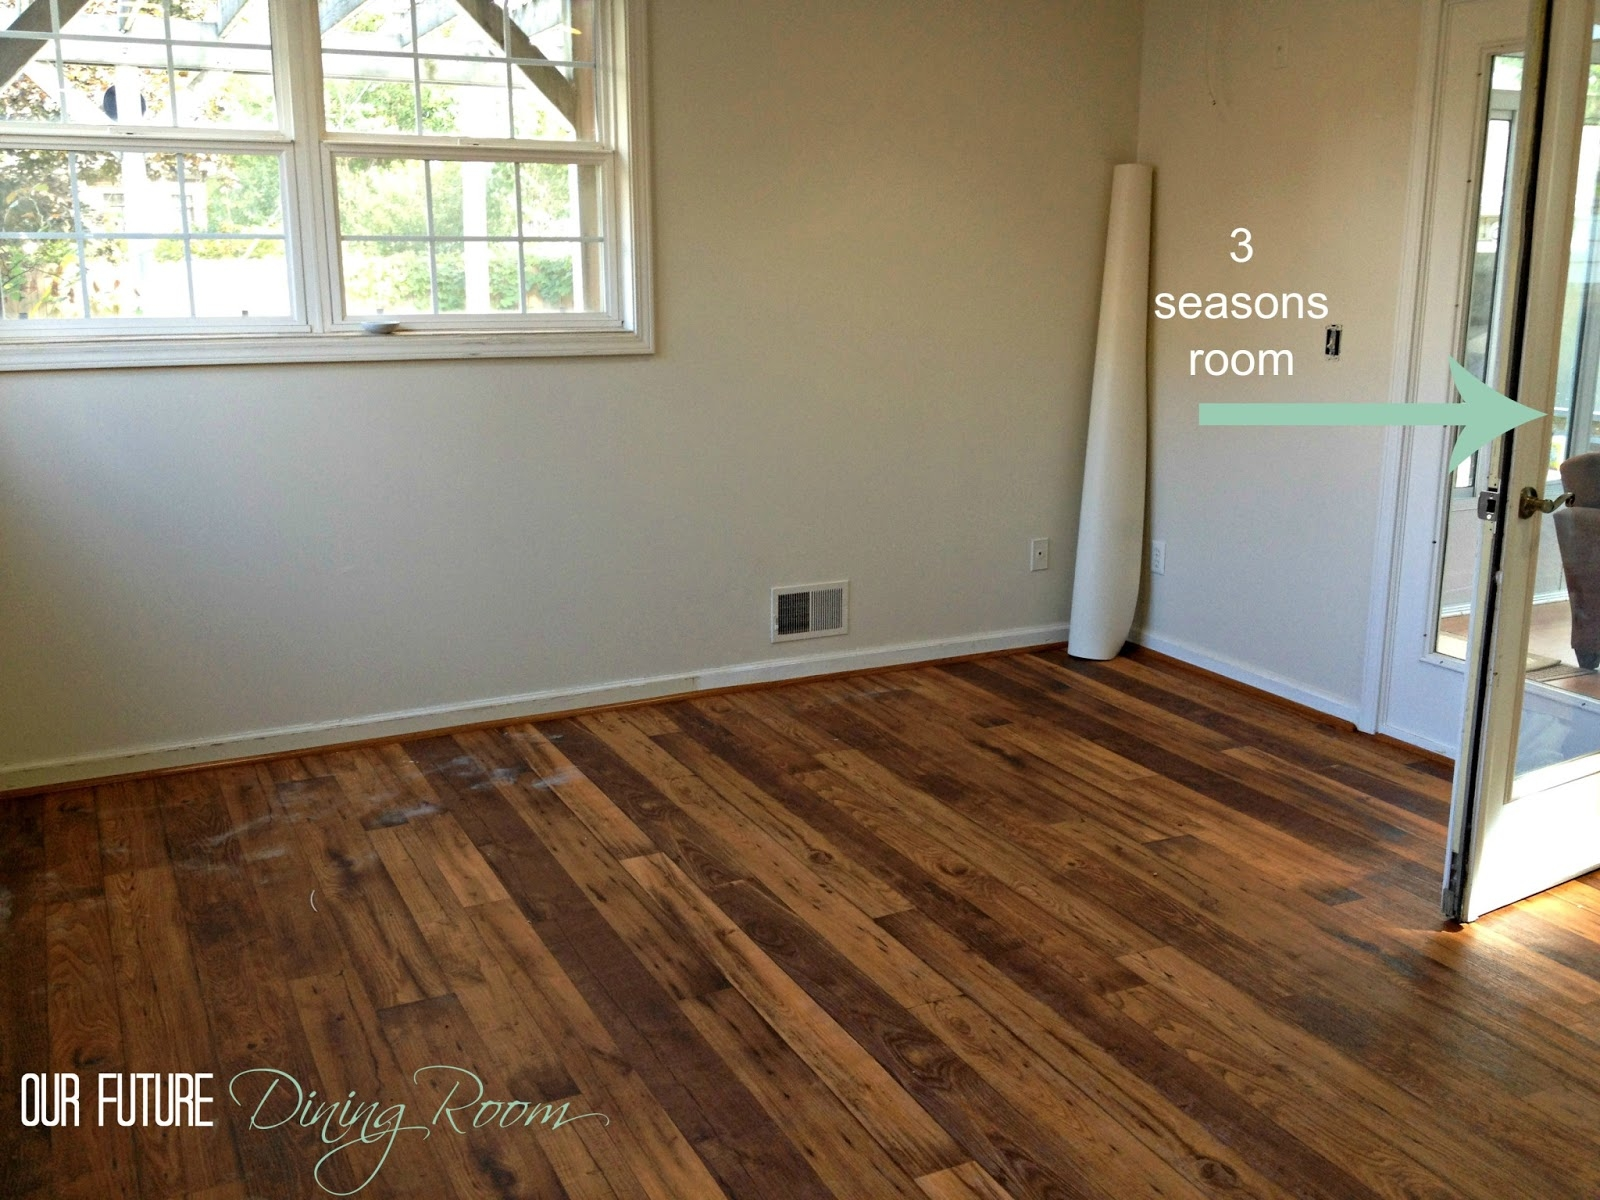 Roll Vinyl Flooring Looks Like Wood